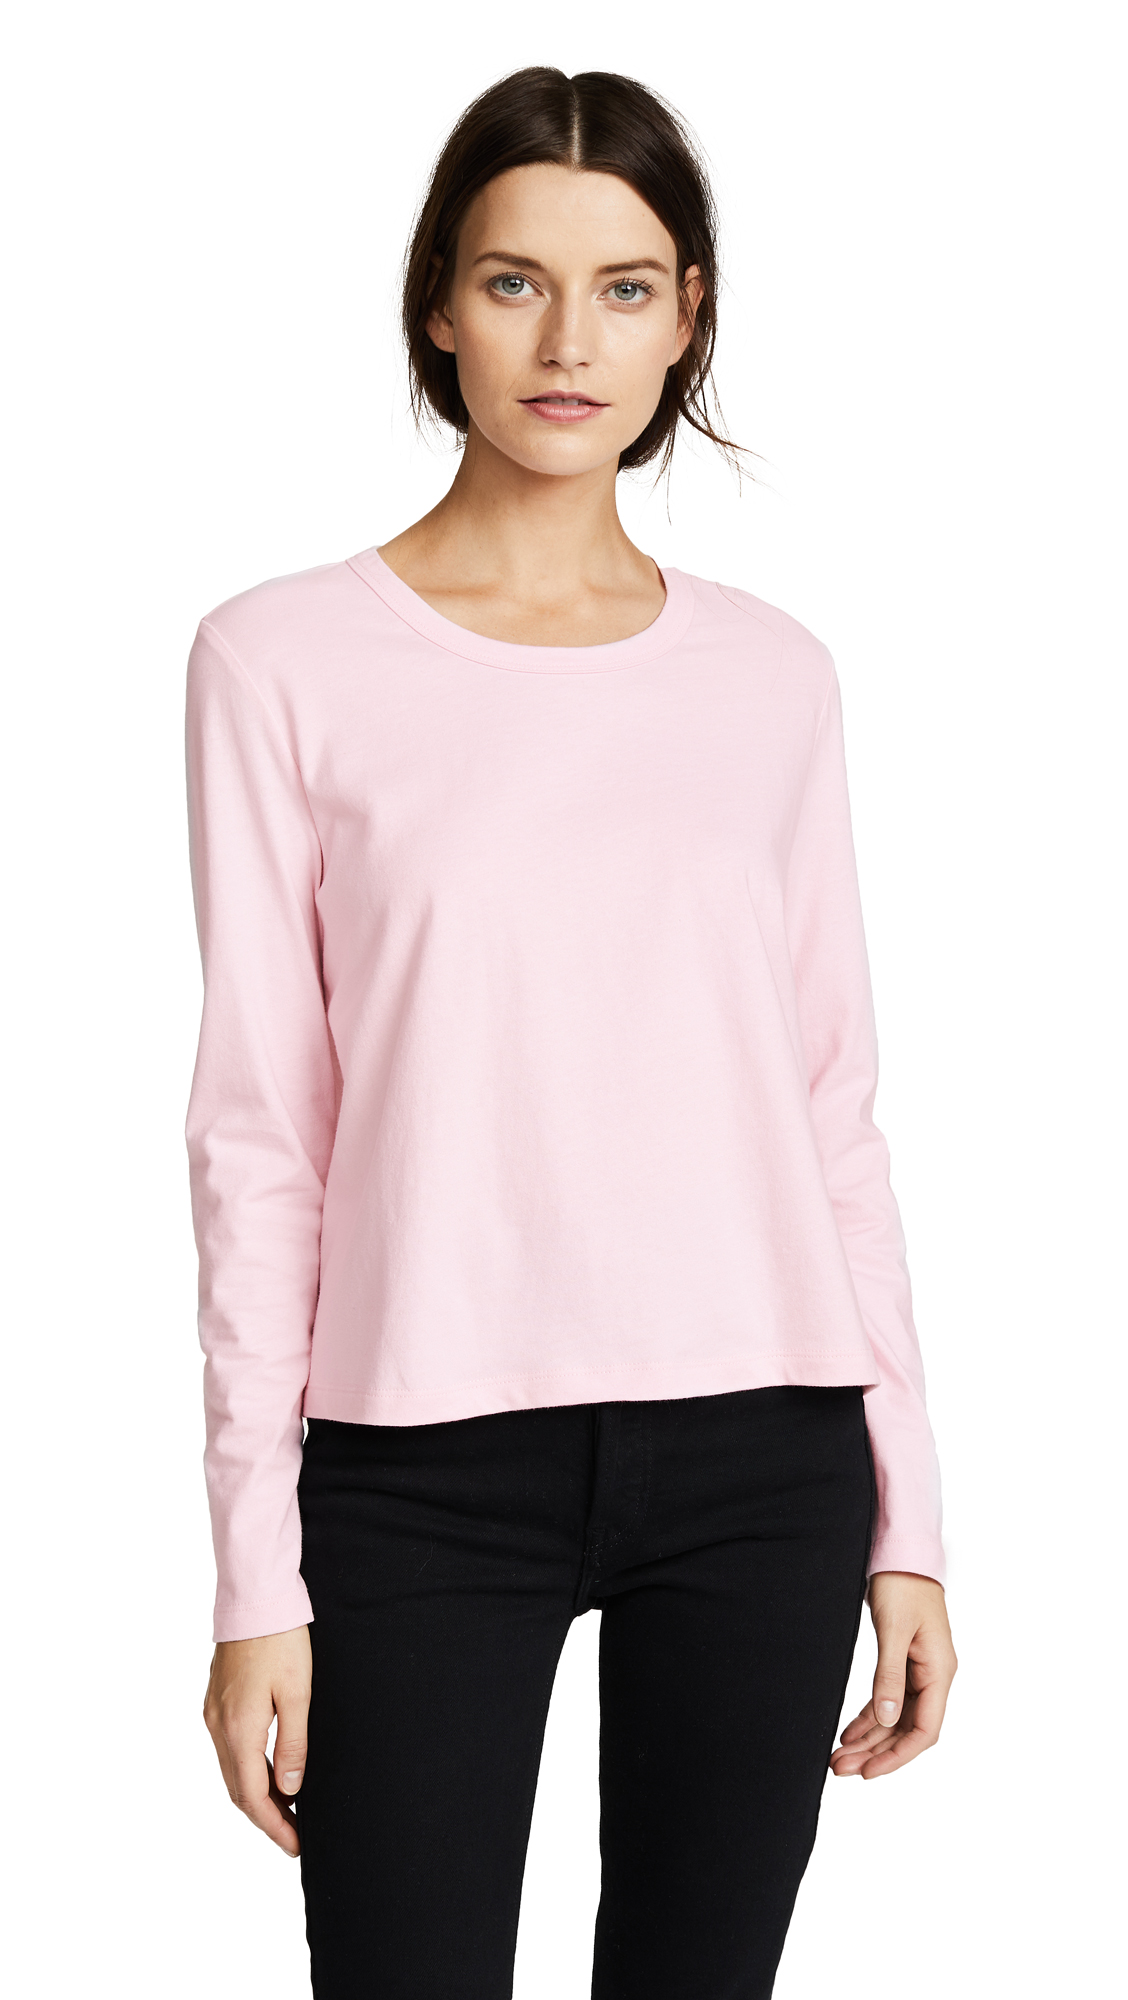 LIANA CLOTHING The Millie Tee in Baby Pink